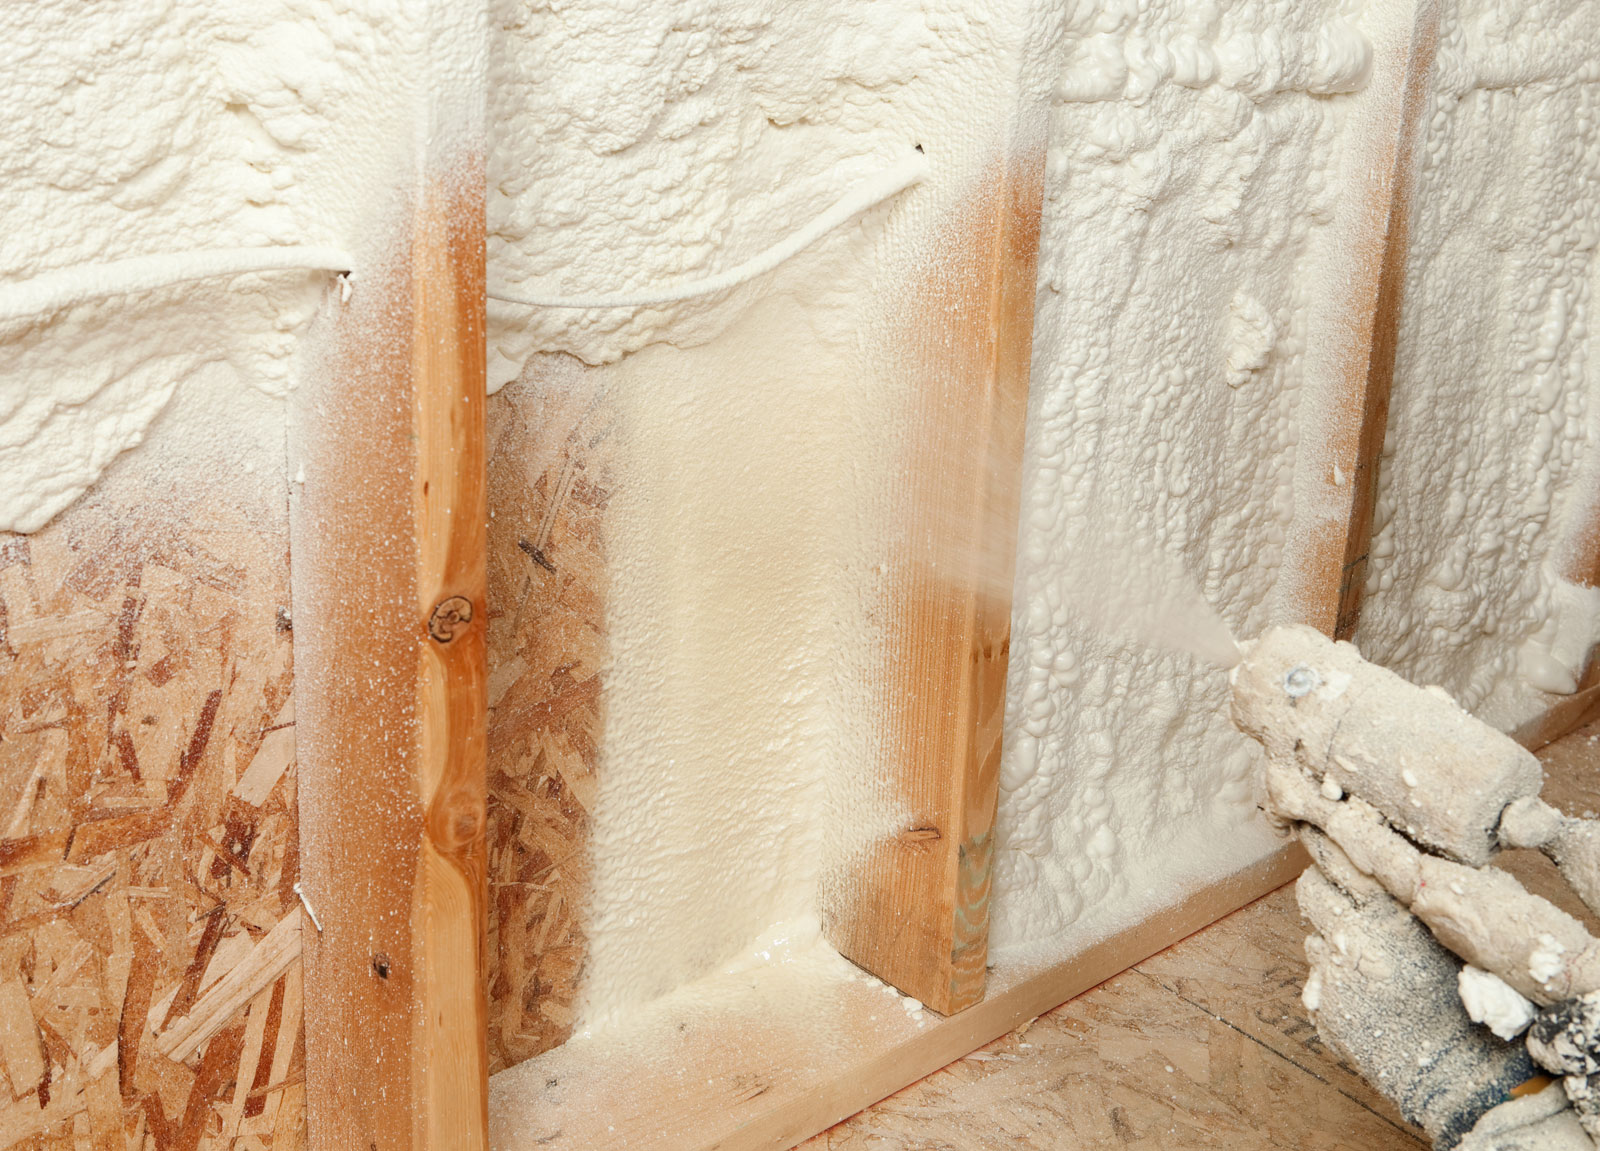 The new gold standard for home insulation is spray-in foam